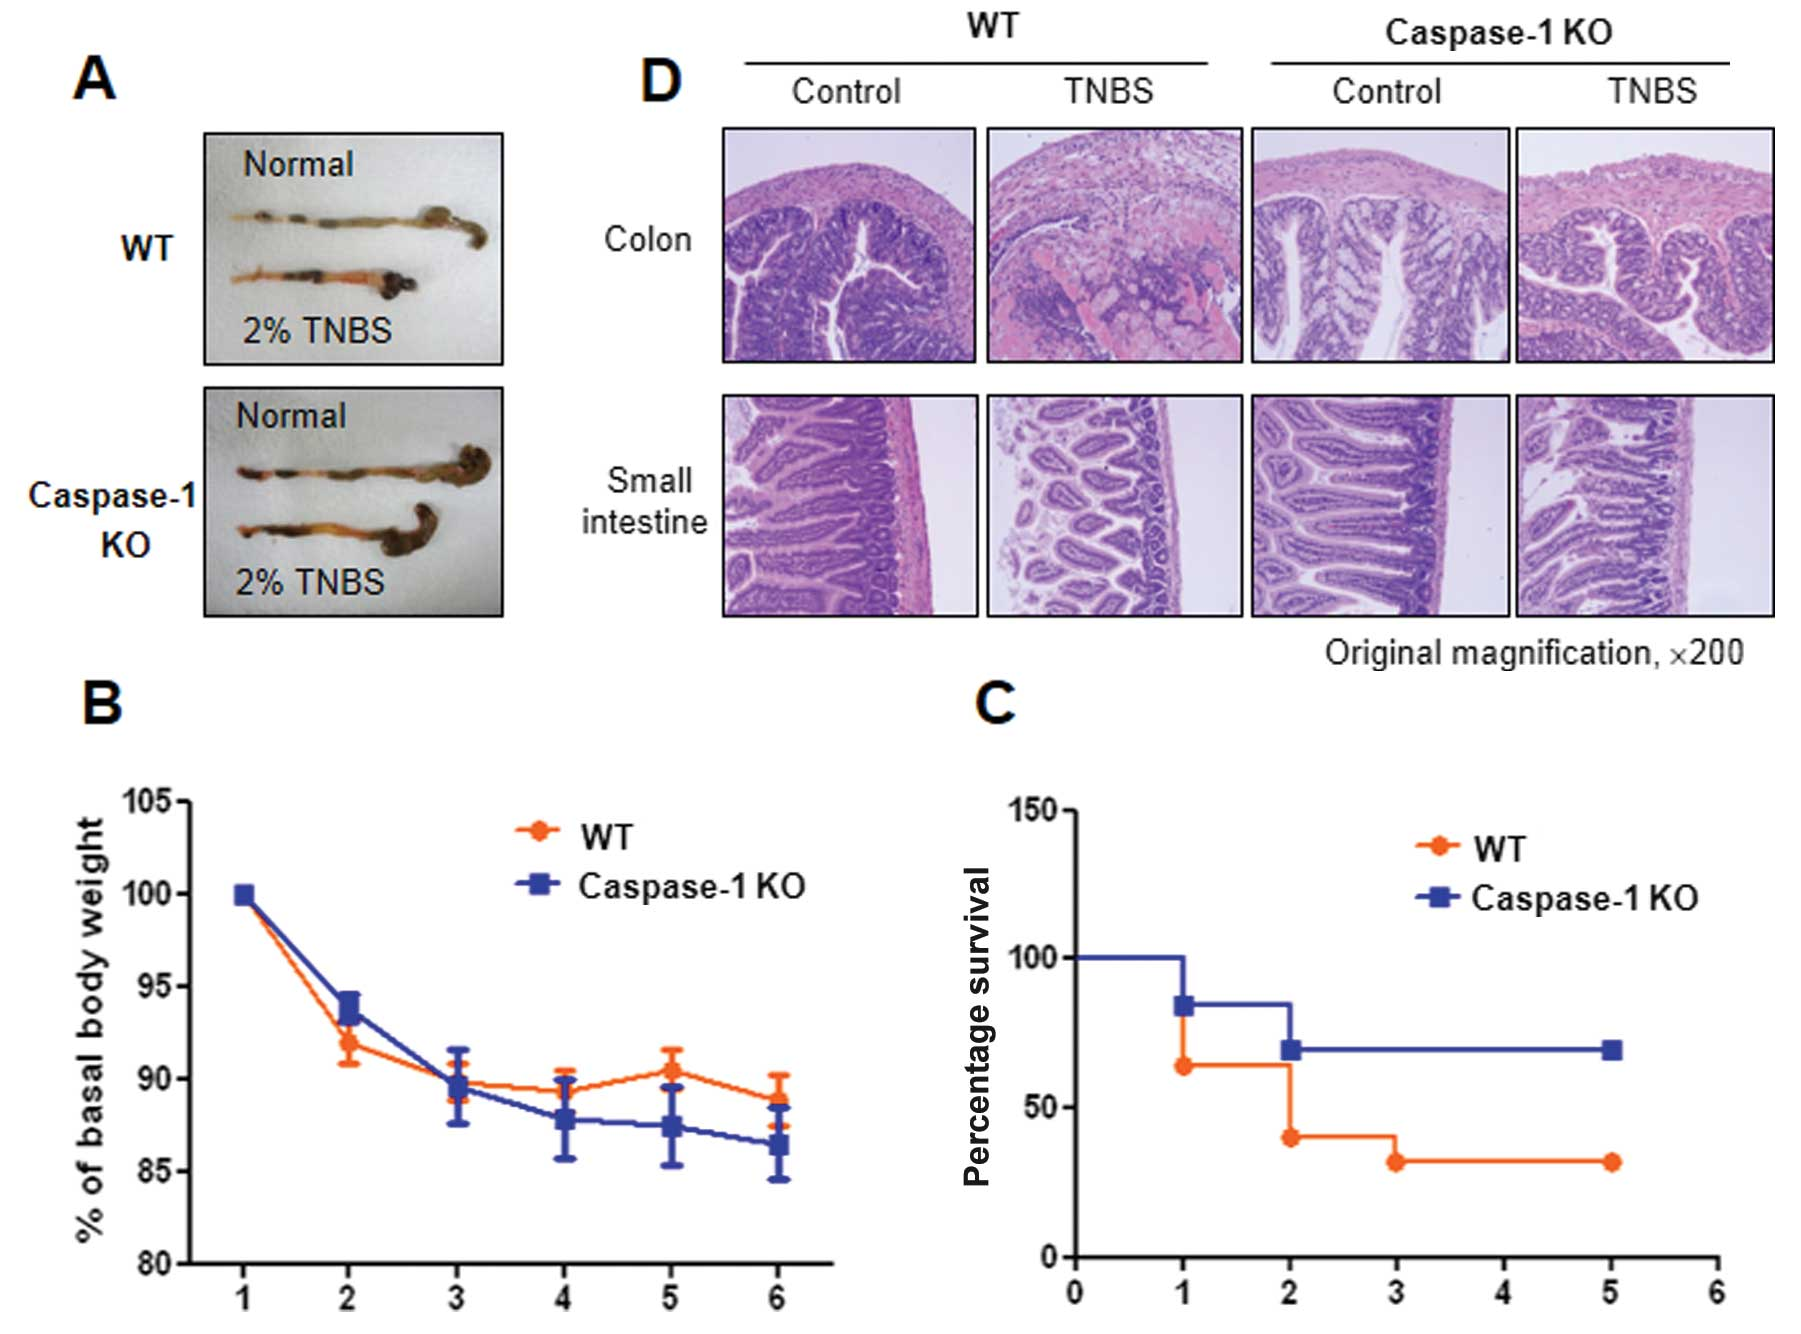 hight resolution of figure 5 induction of acute colitis in c57bl6 wild type wt and caspase 1 knockout ko mice by the intrarectal injection of 2 2 4 6 trinitrobenzene